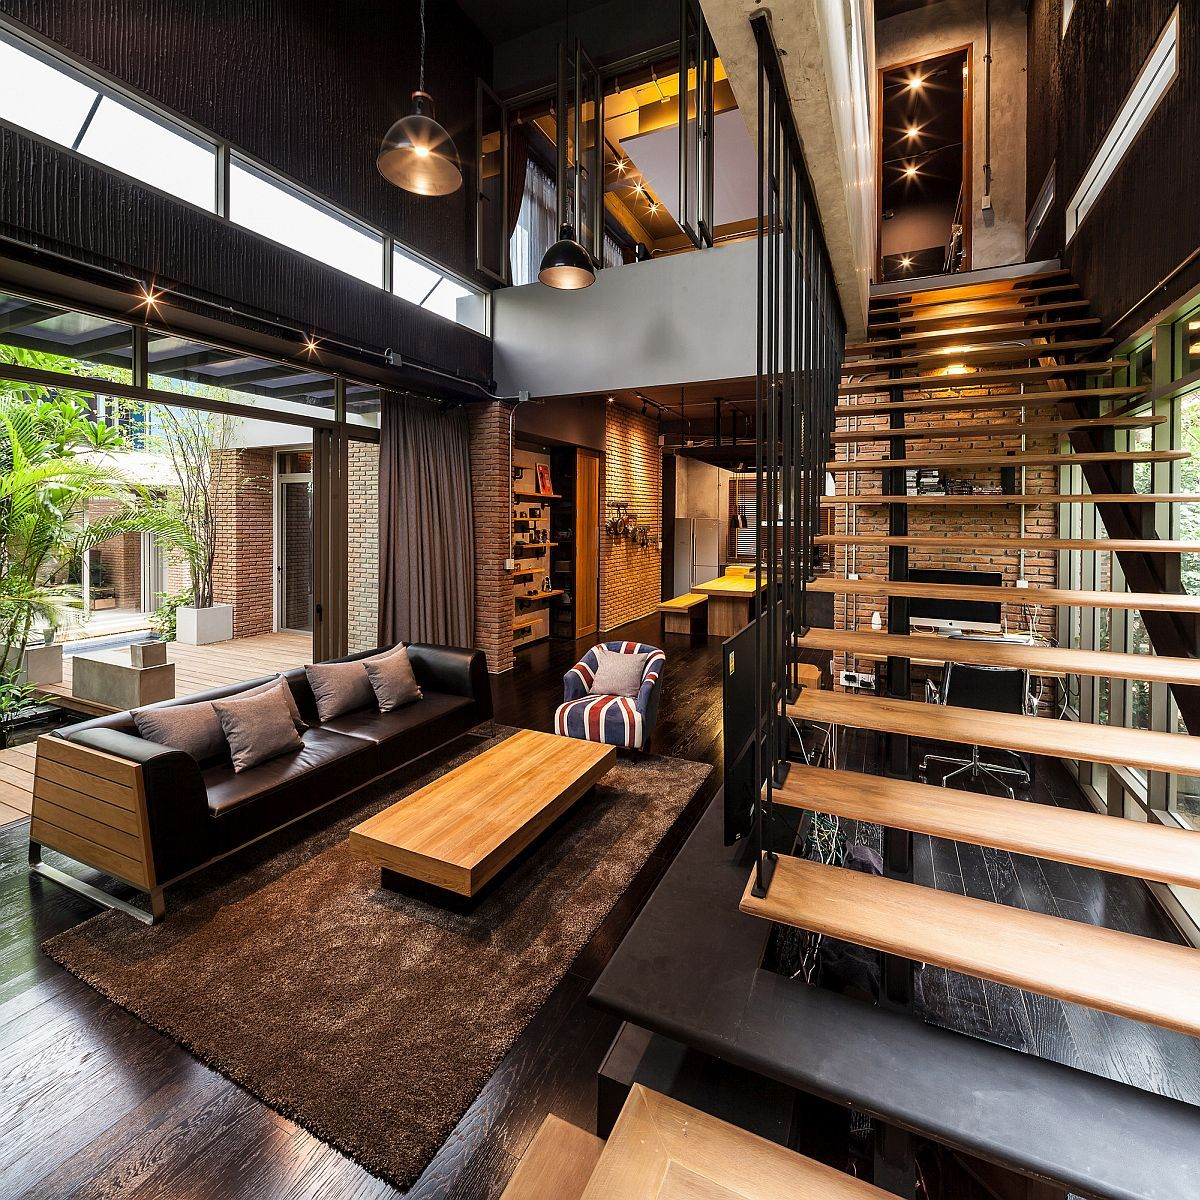 Industrial Decor - Modern Architecture - Bangkok Living